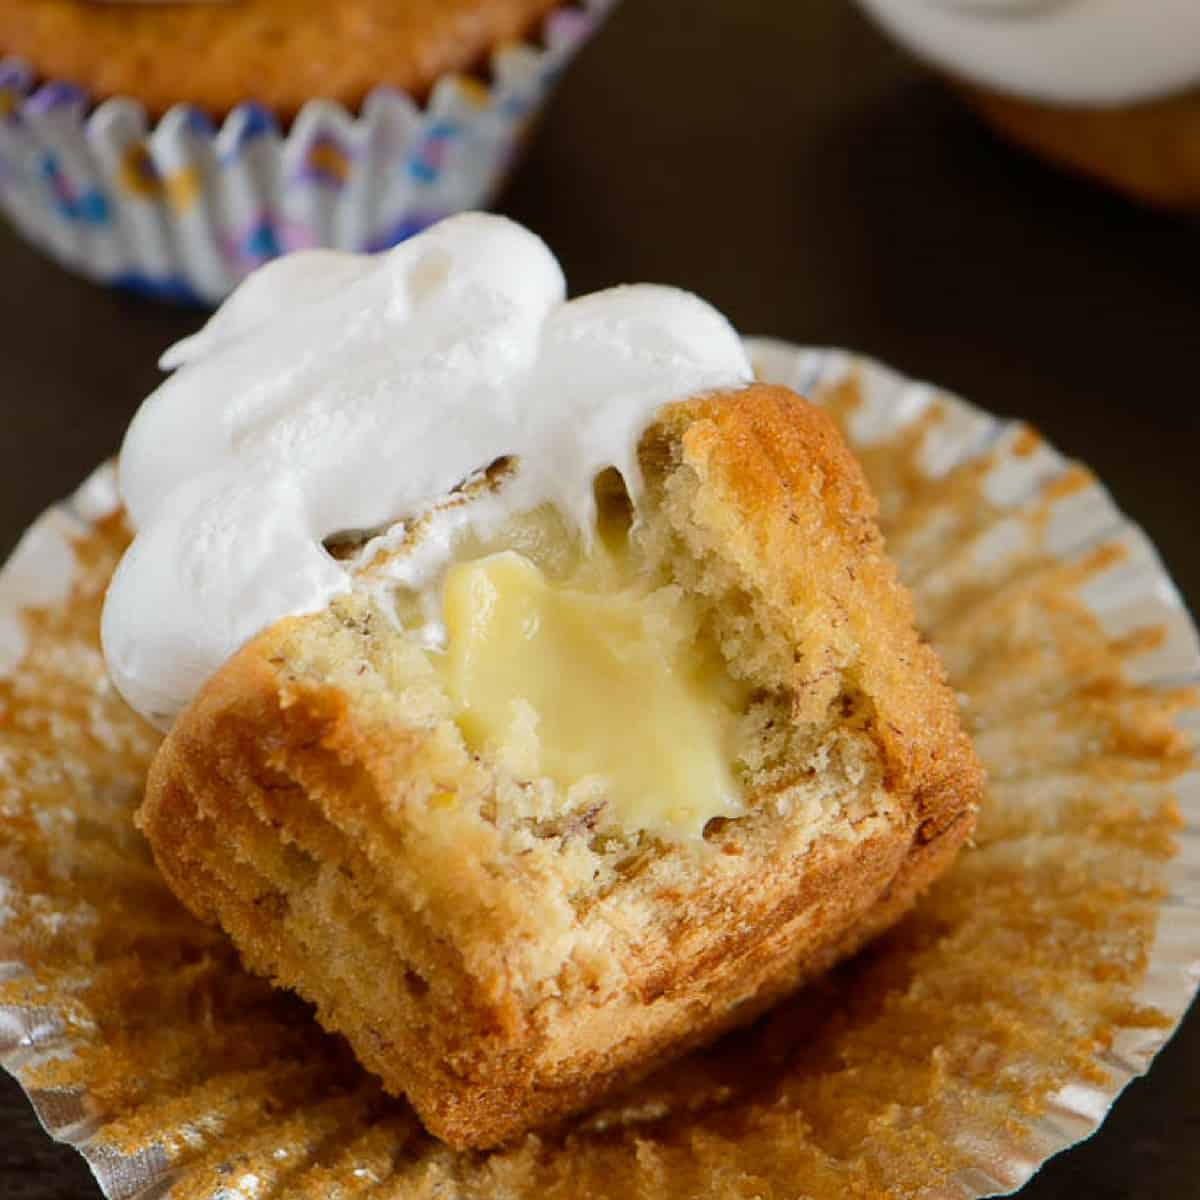 A banana pudding cupcake with a bite out so the filling inside is visible.